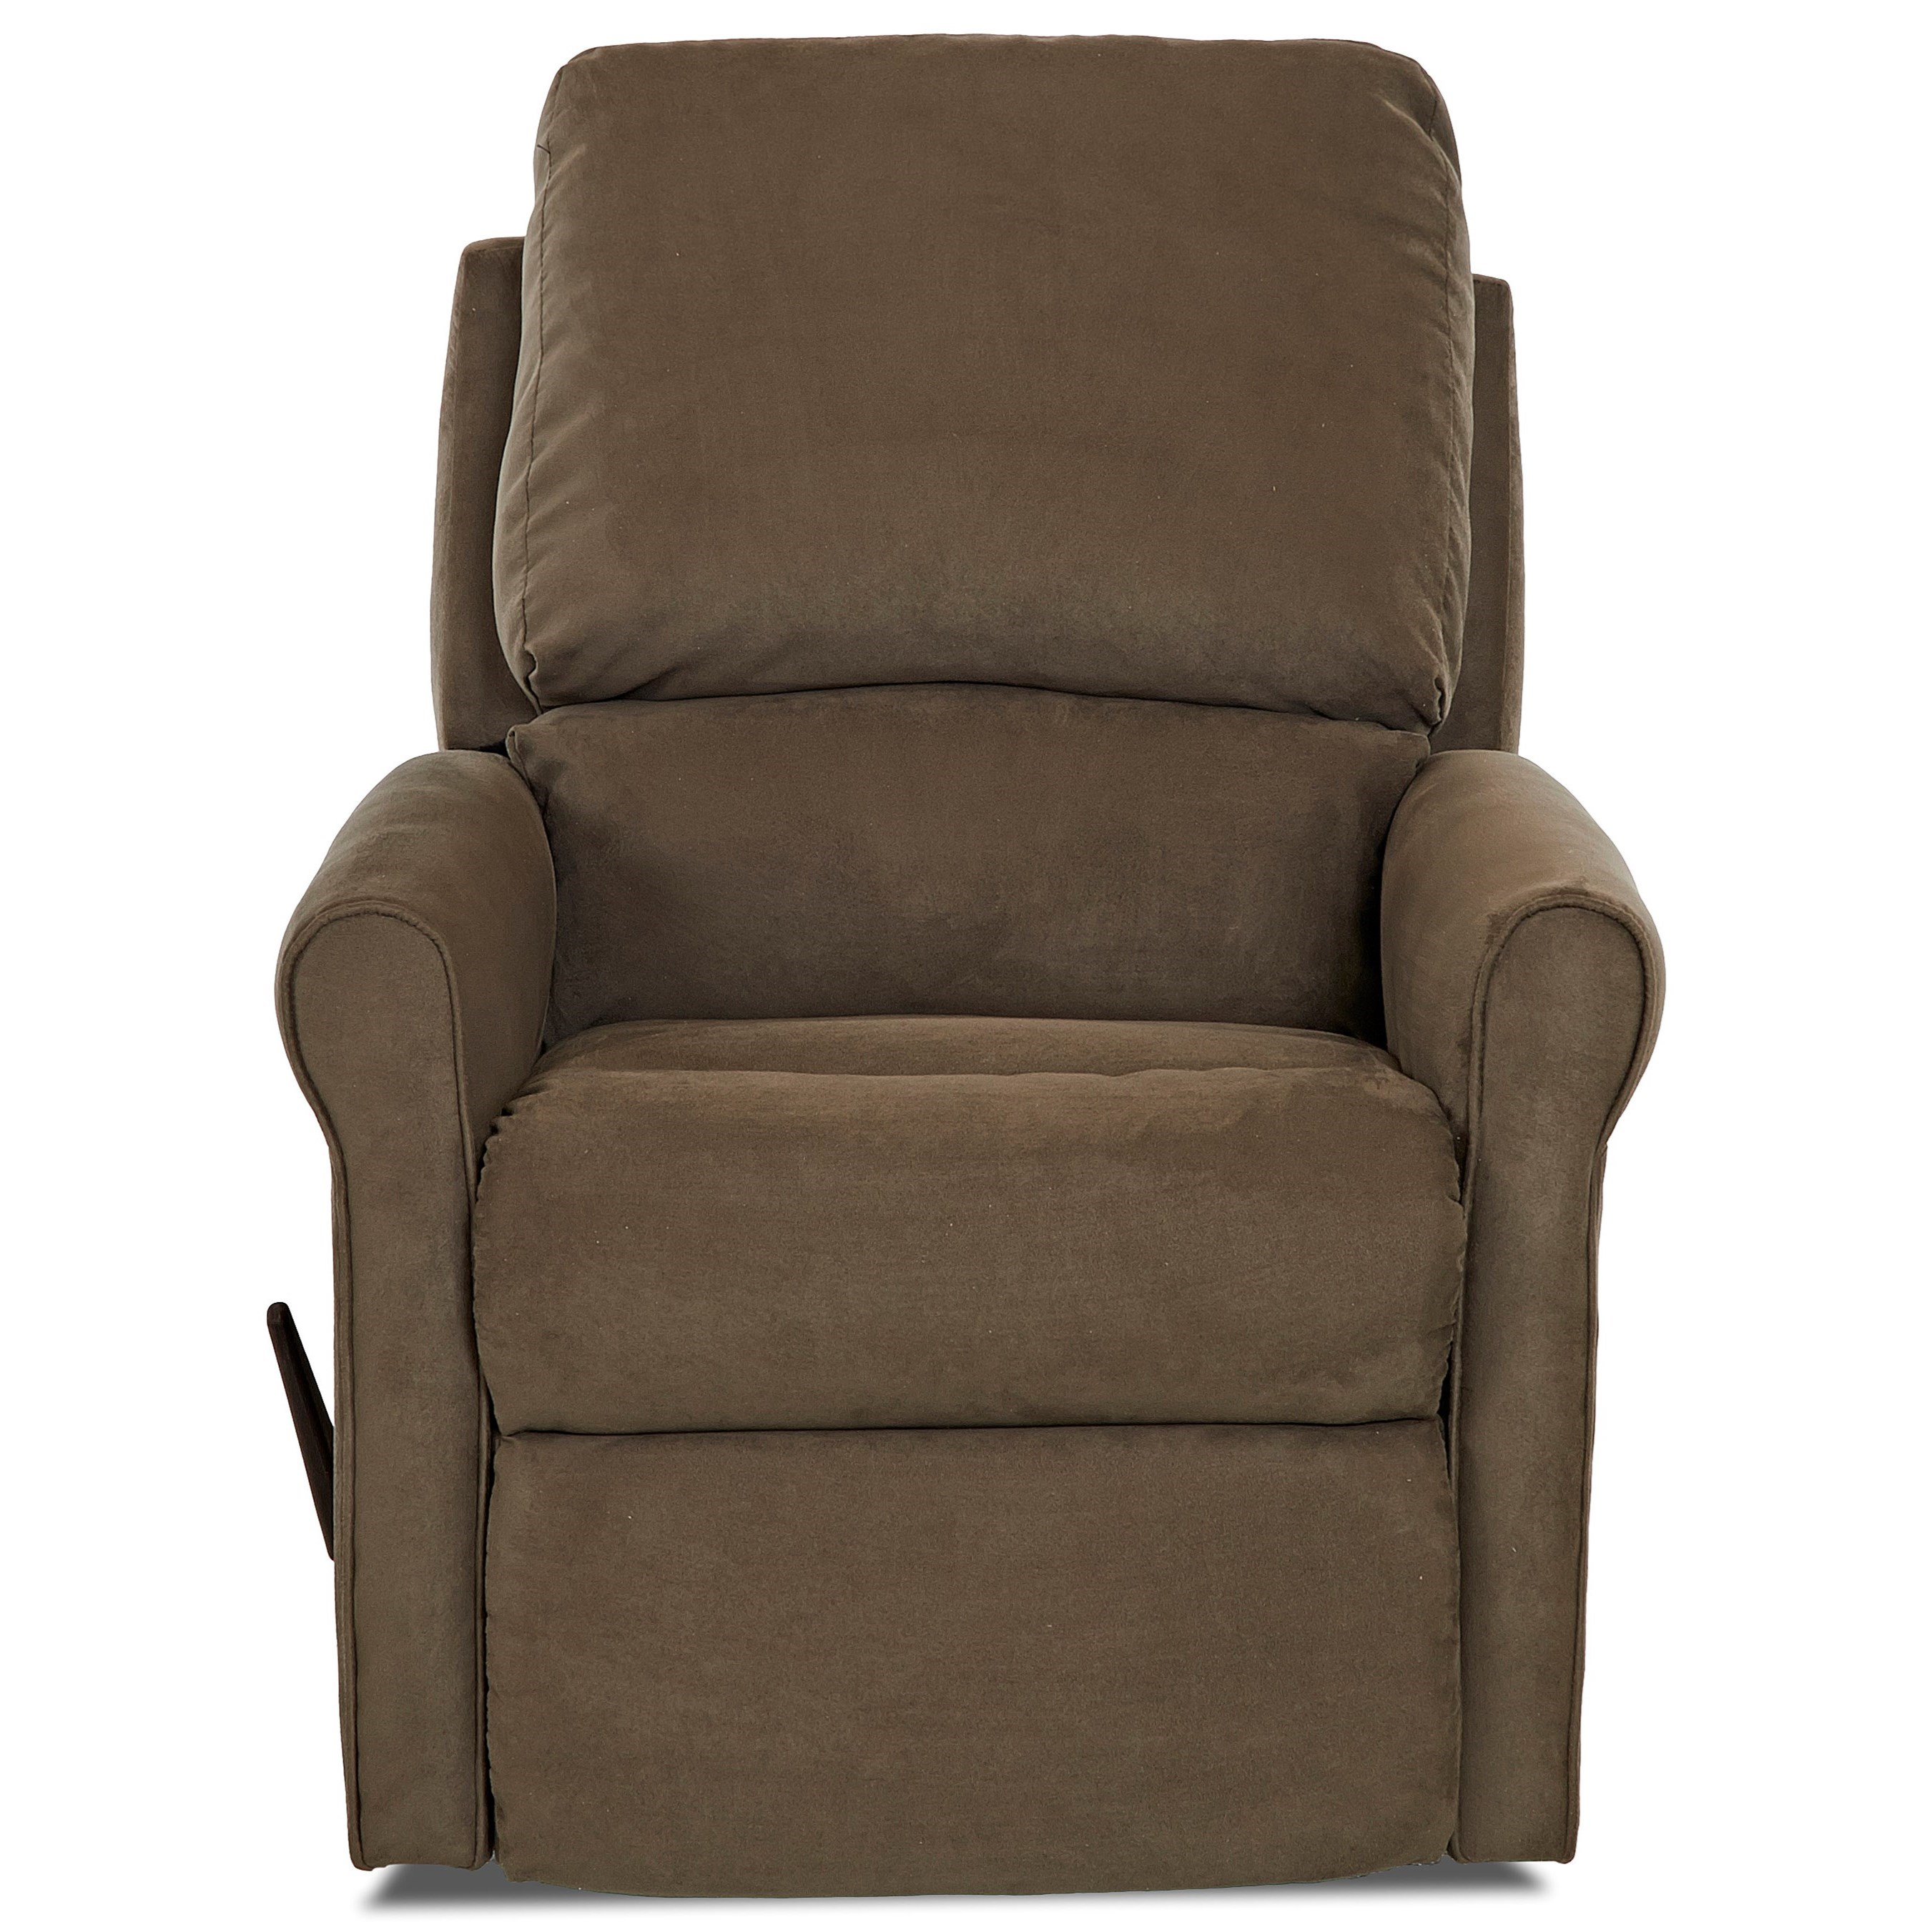 Baja Gliding Reclining Chair by Klaussner at Johnny Janosik